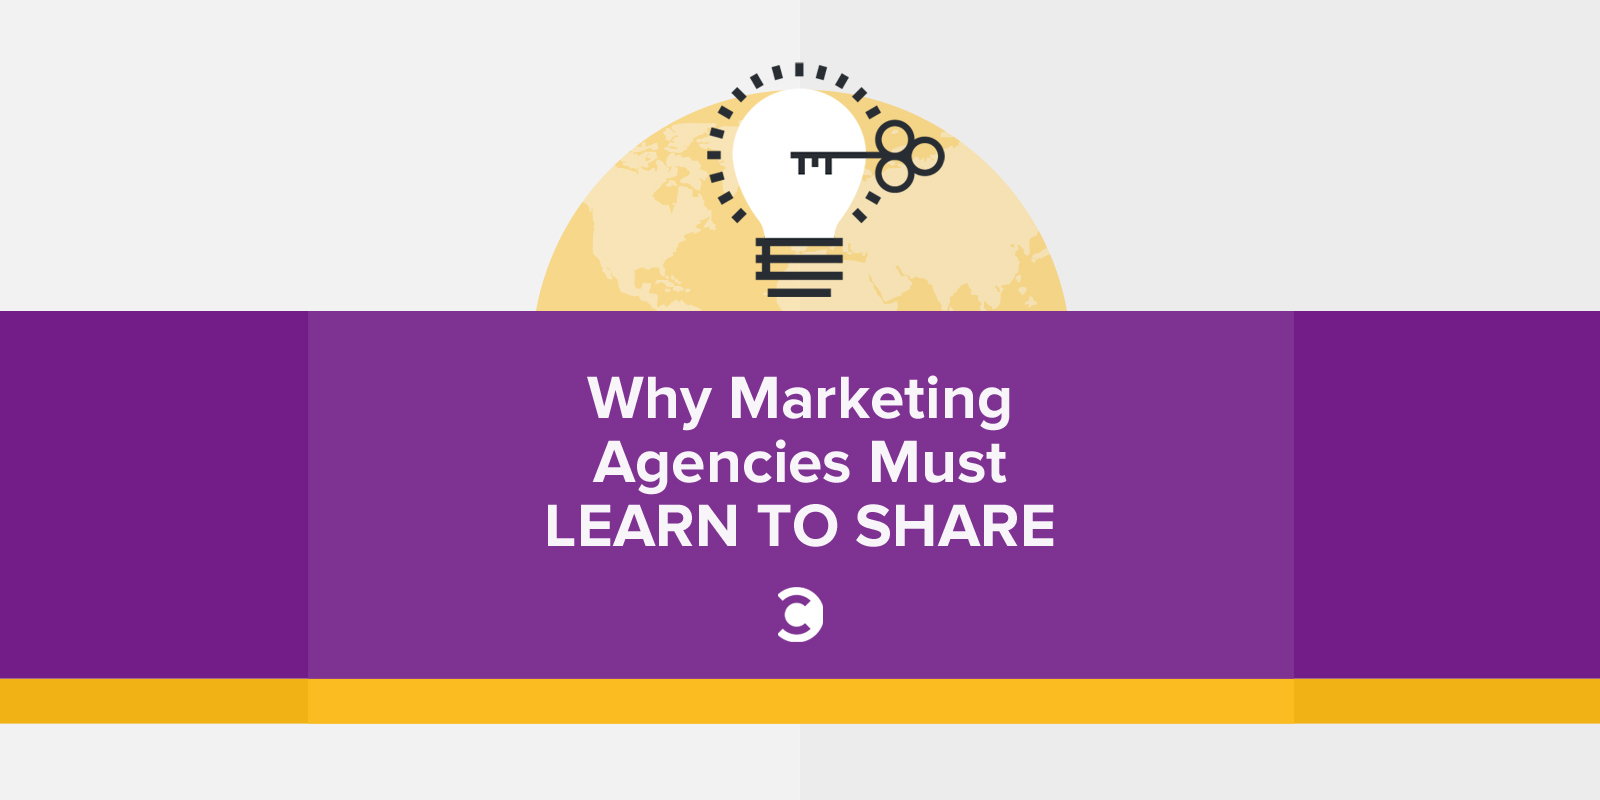 Why Marketing Agencies Must Learn to Share